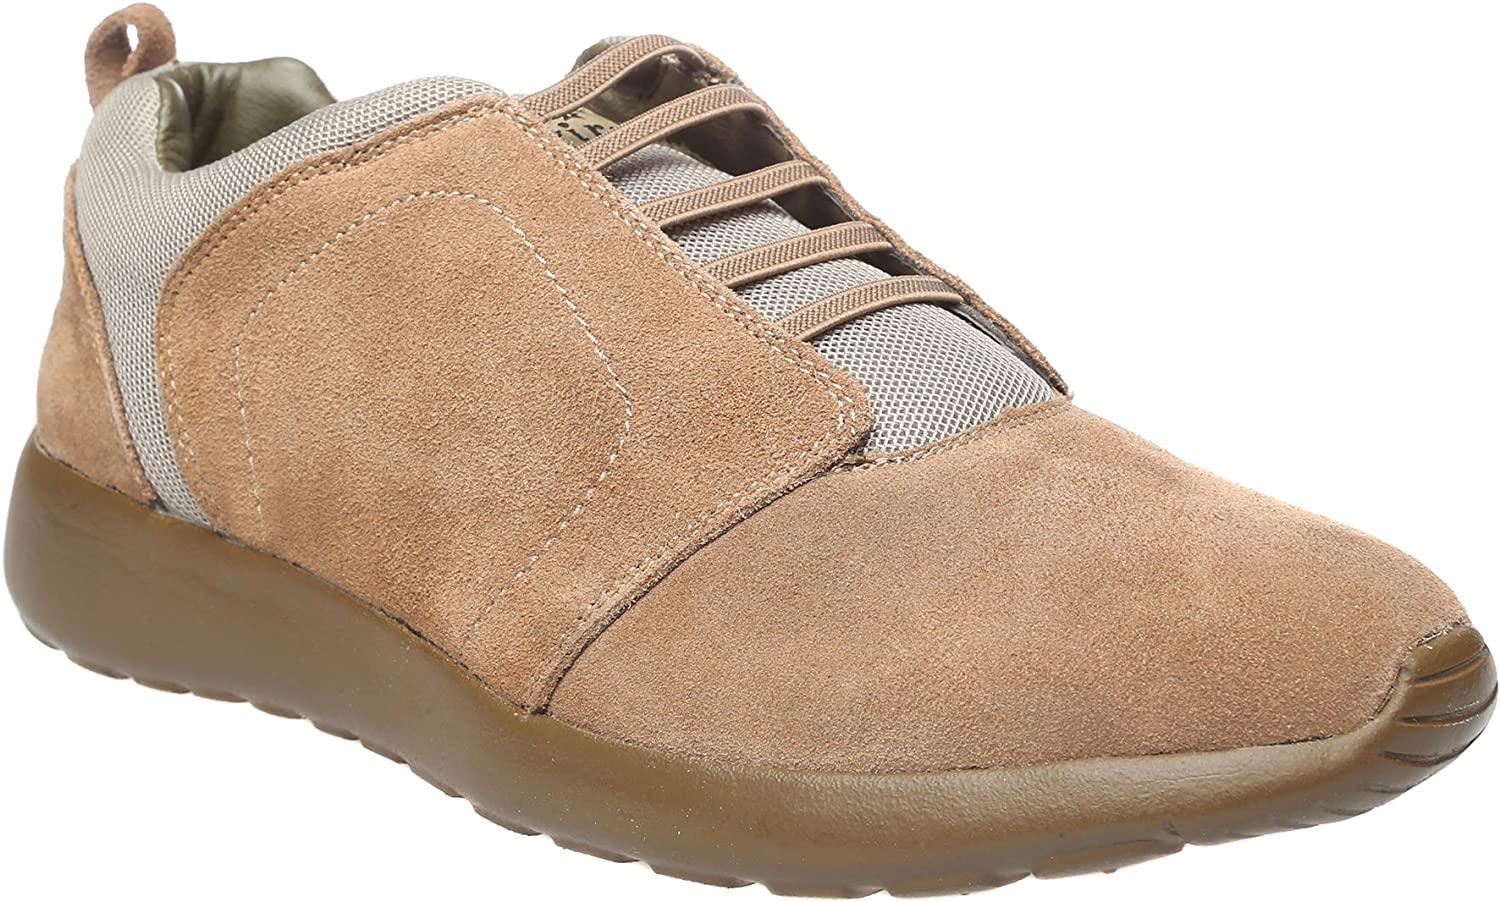 Avirex Sports shoes Men's Genuine Leather Suede and Synthetic Fabric Mod. Douglas Albatros 162-M-193-05